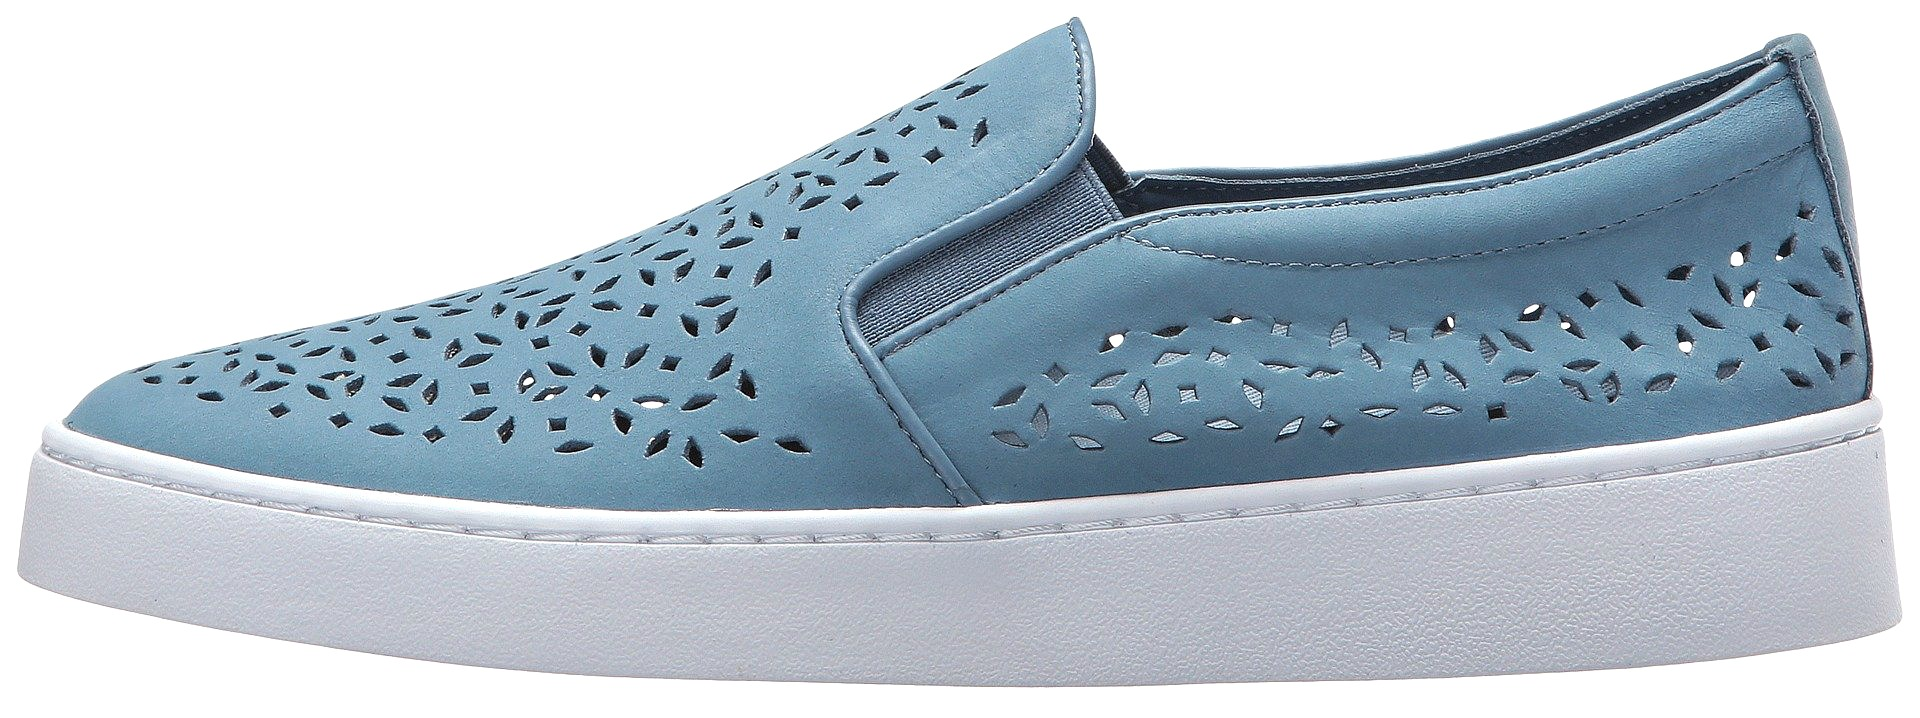 most-comfortable-slip-on-sneakers